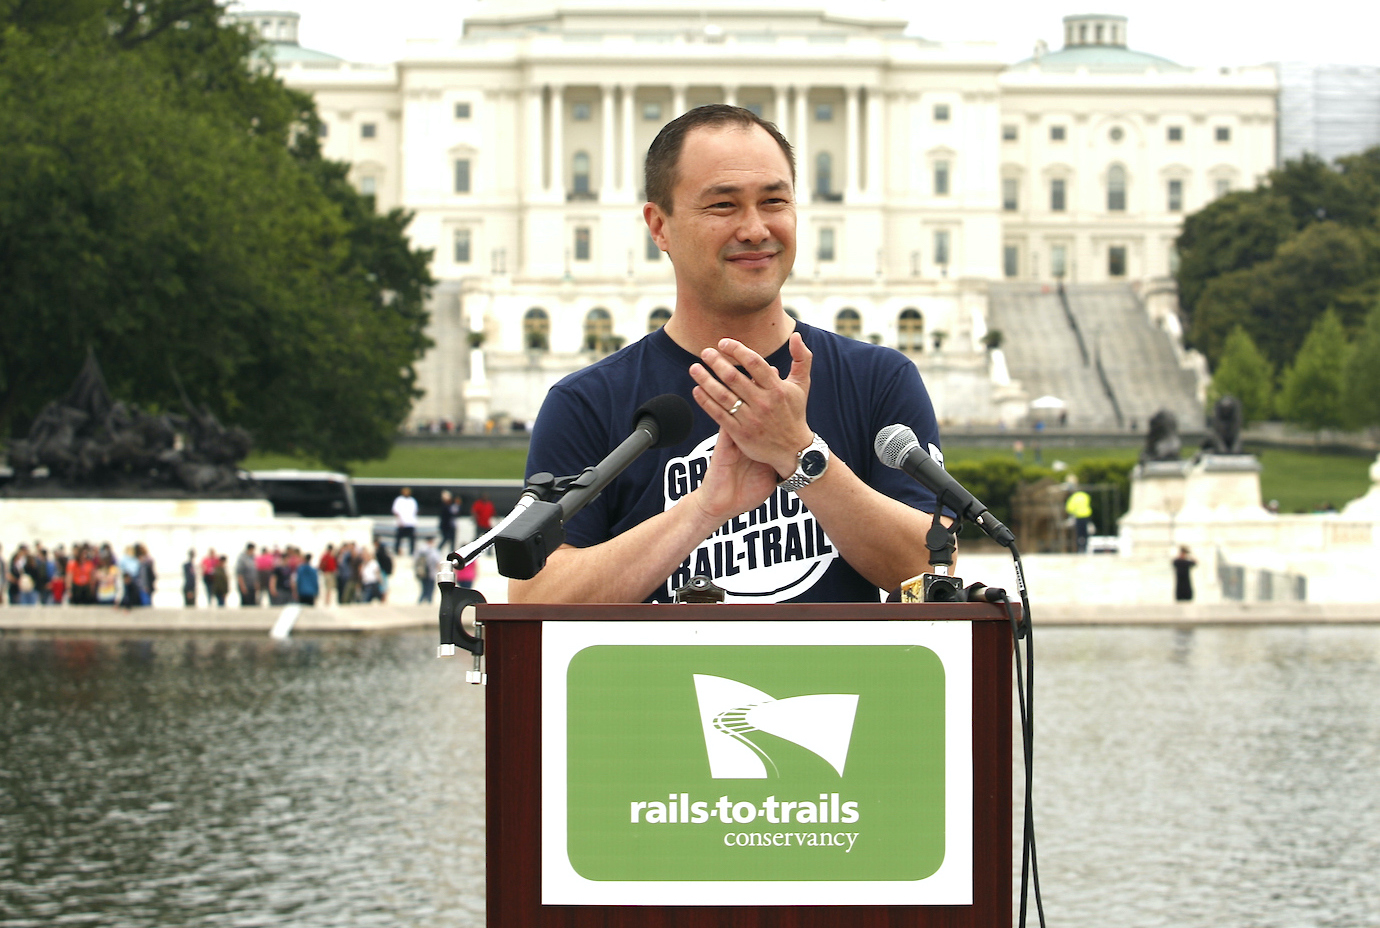 Ryan Chao addressing the crowd at the Great American Rail-Trail preferred route reveal in Washington, D.C., May 2019 | Courtesy RTC